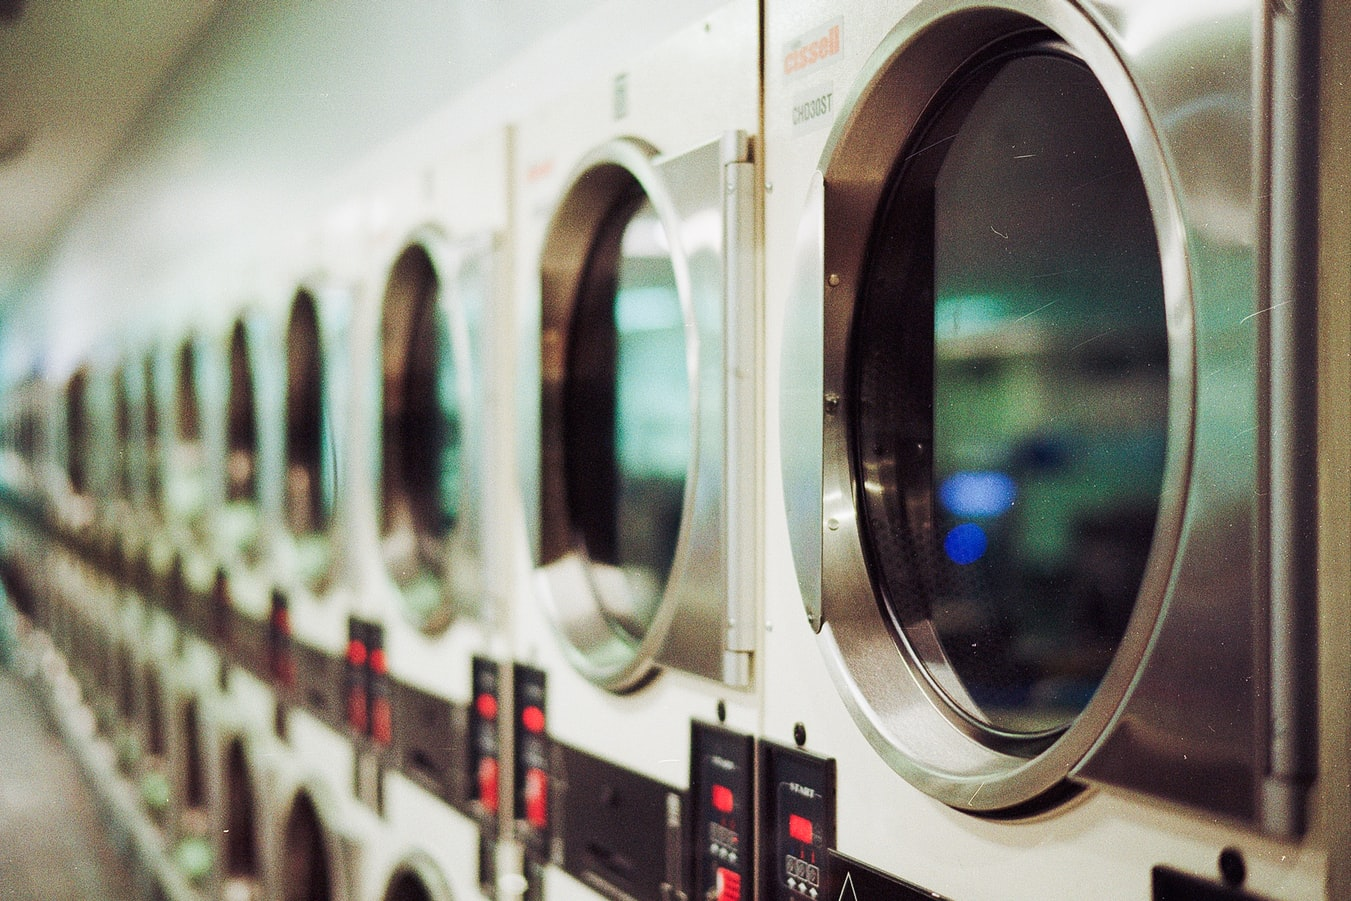 spin cycle in the washing machine can help dry clothes faster